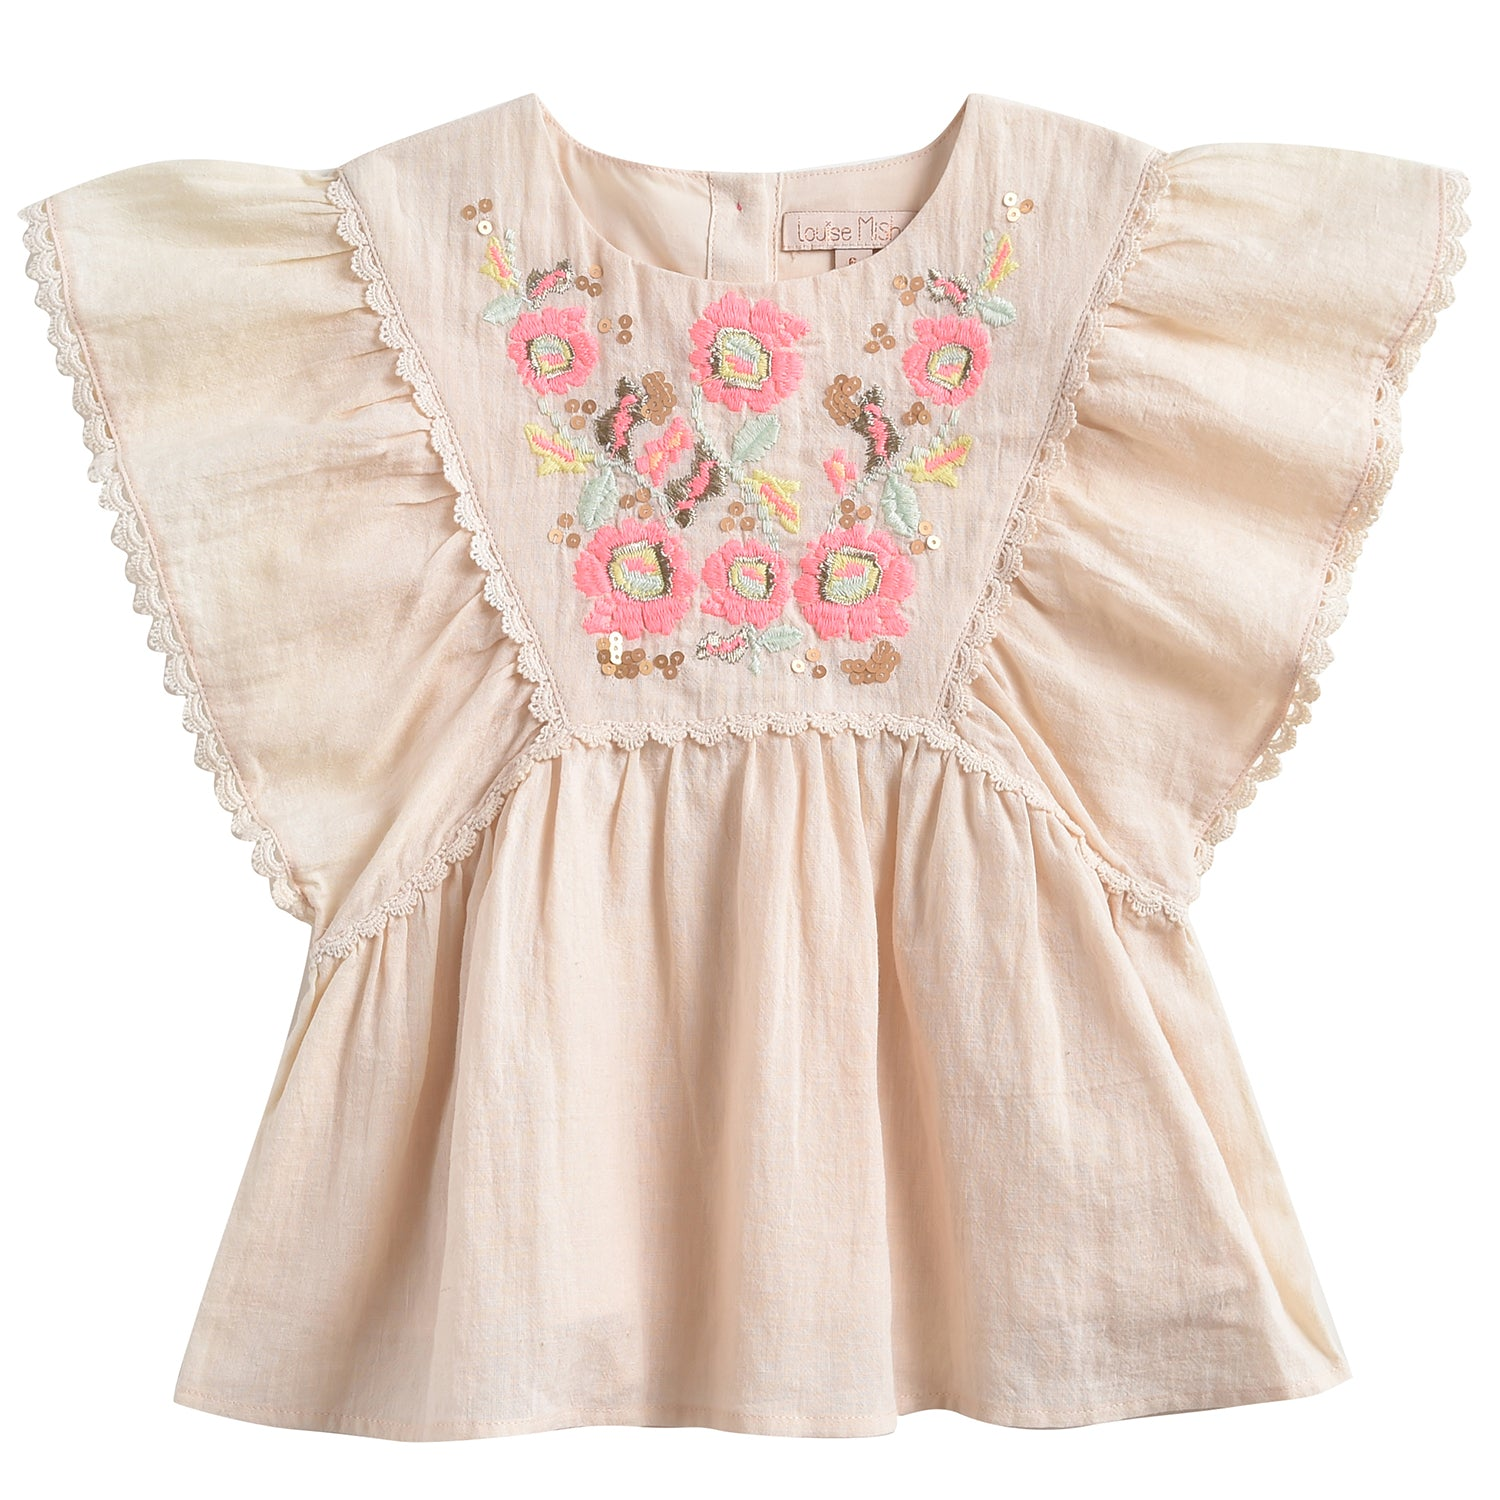 yoya, kids, girls, louise misha, casual, summer, sleeveless, ruffle shoulder, floral embroidered, swing tunic top